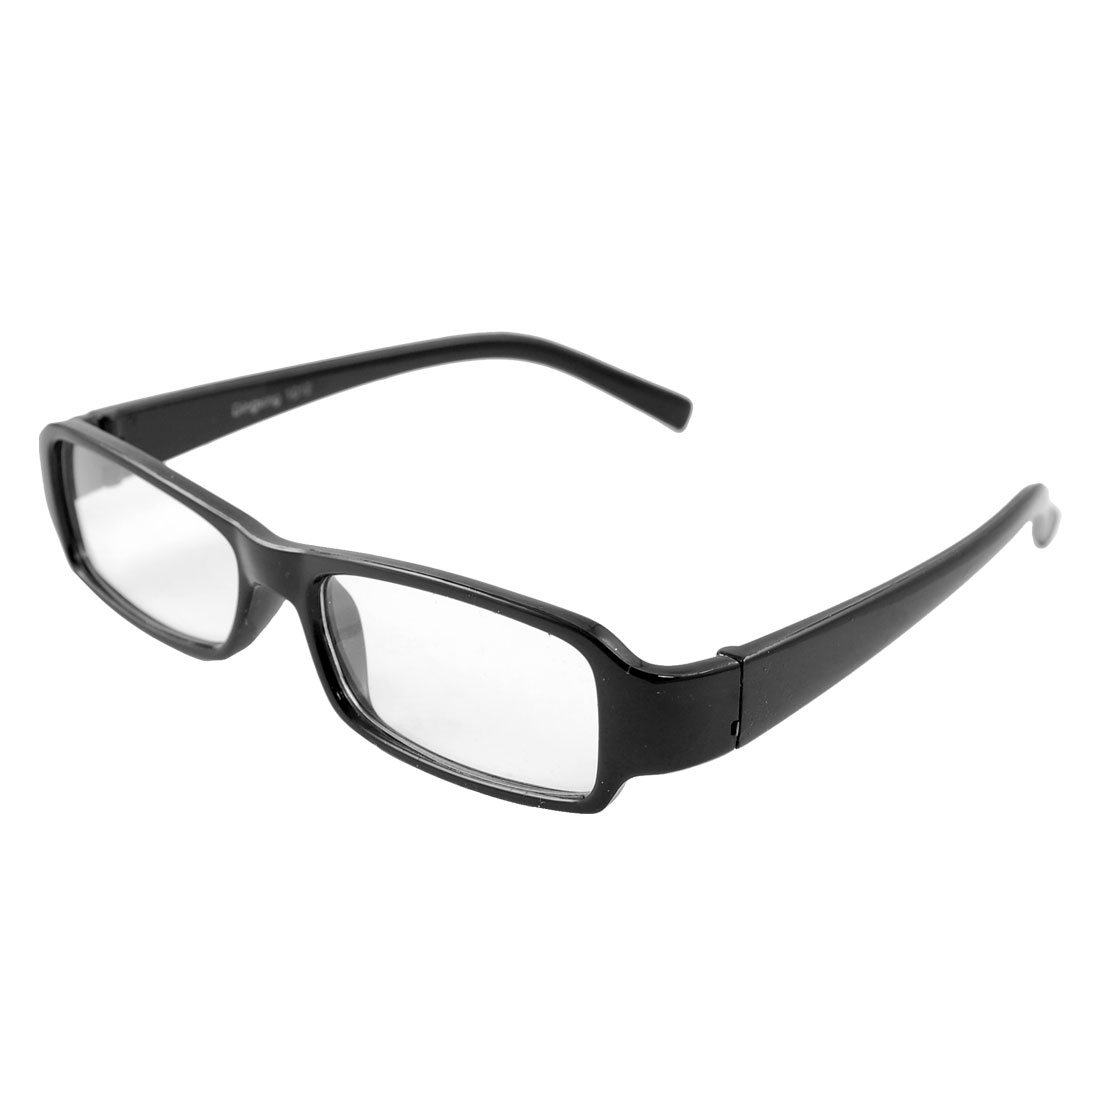 Woman Full Frame Plastic Arms Rectangle Lens Plain Glasses Black